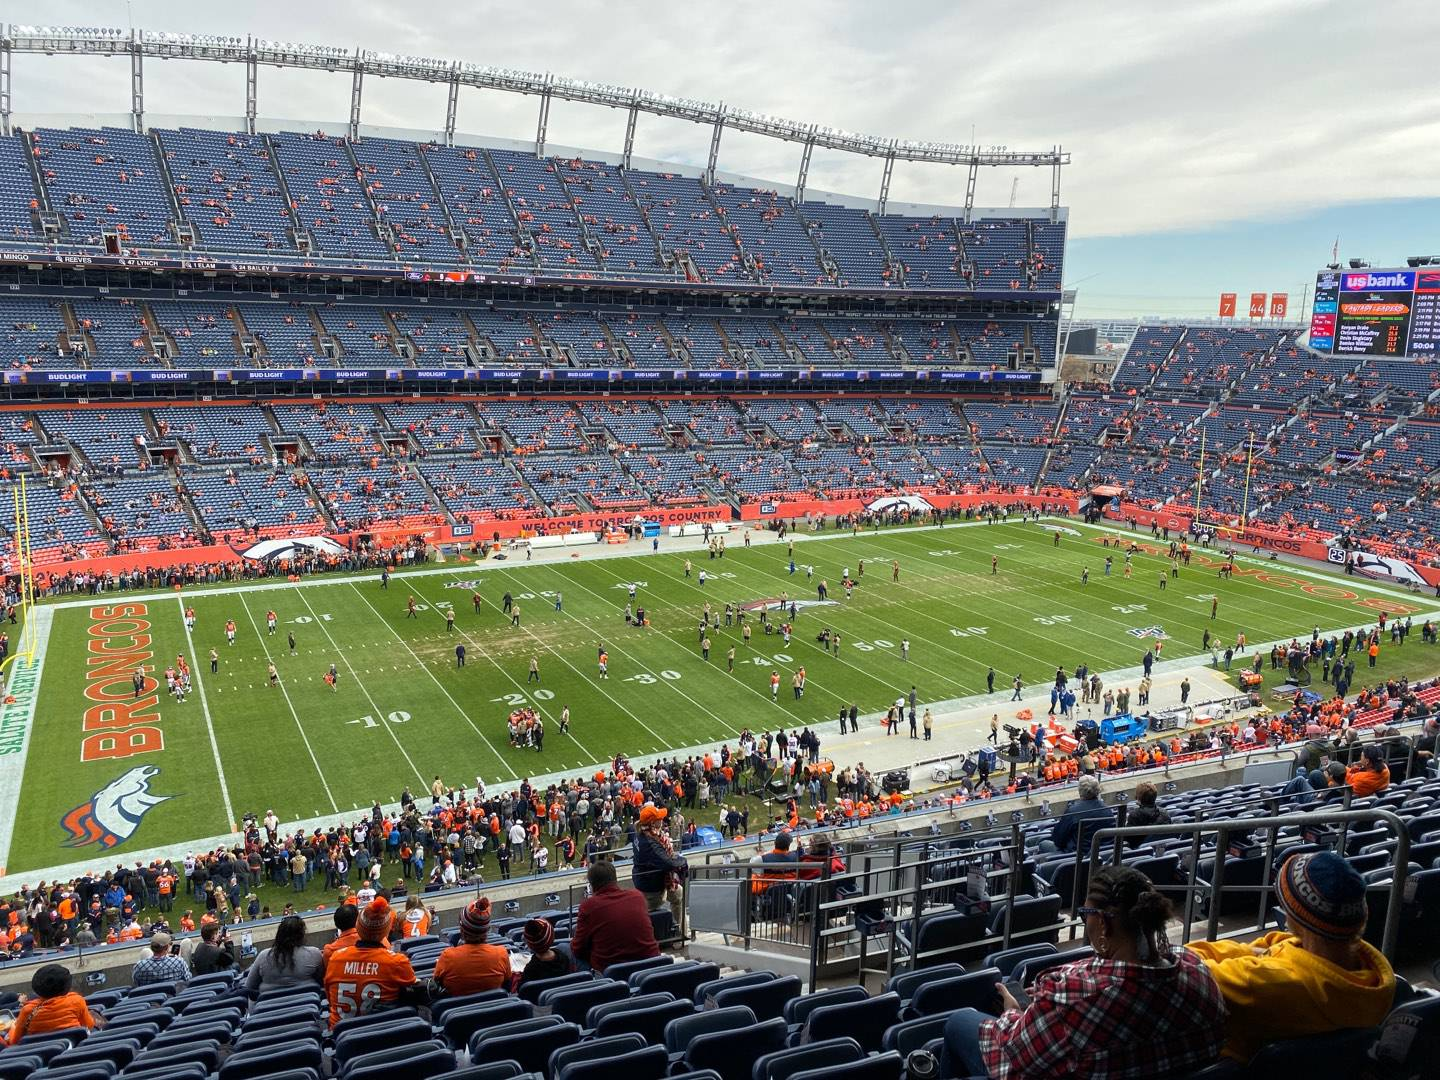 Empower Field at Mile High Stadium Section 314 Row 16 Seat 7